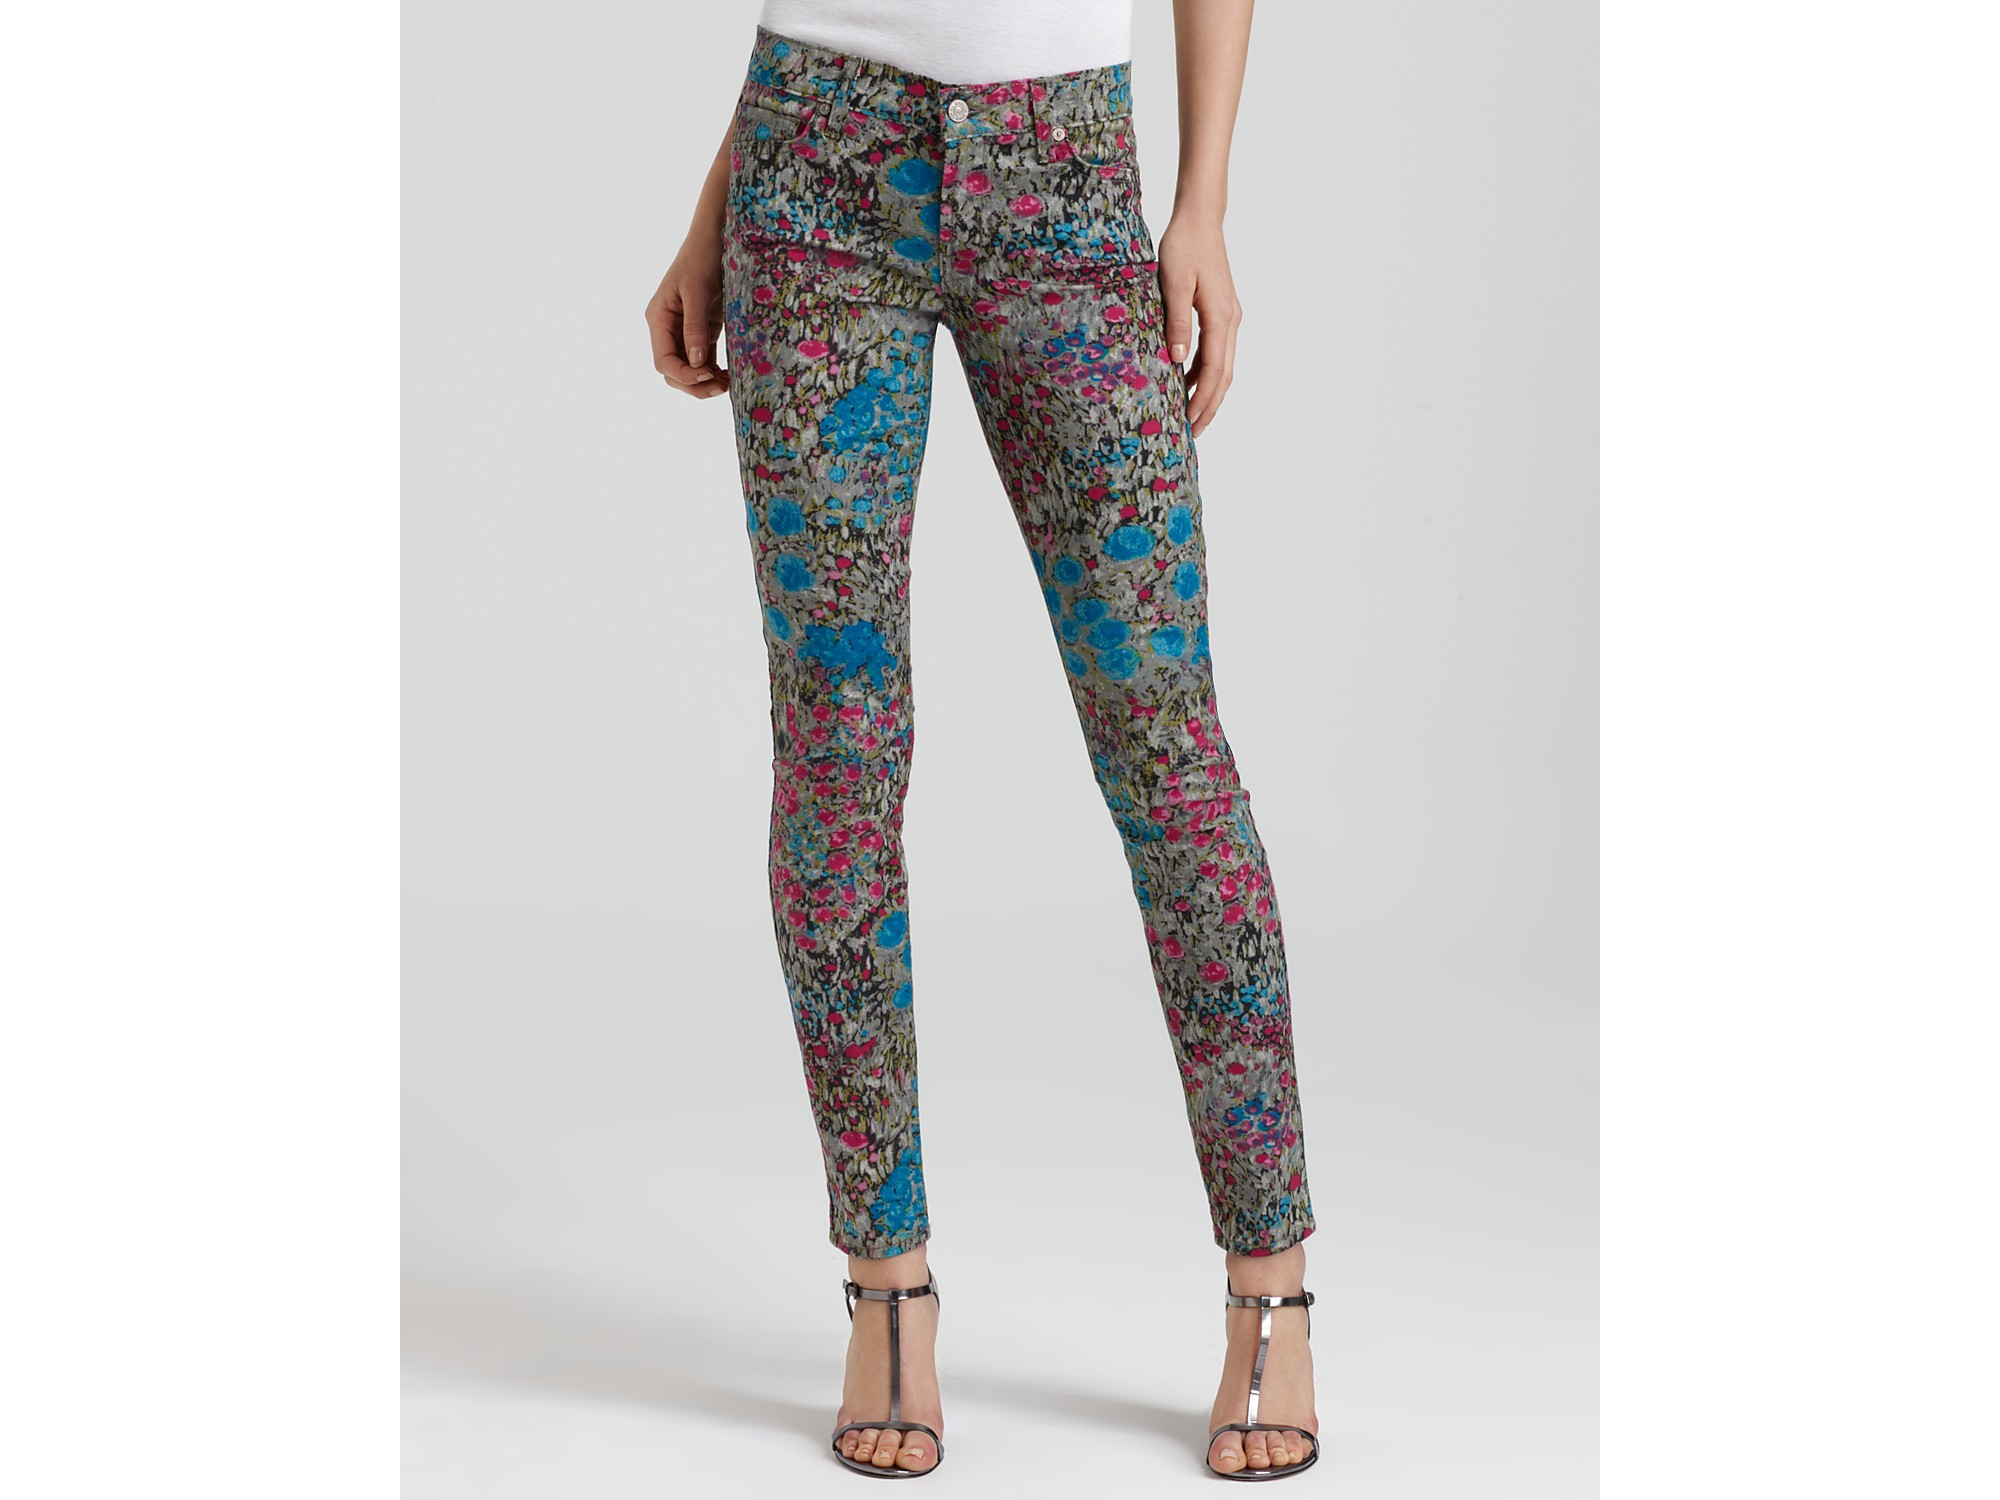 7 for all mankind Jeans Skinny Jeans in Garden Party Floral | Lyst